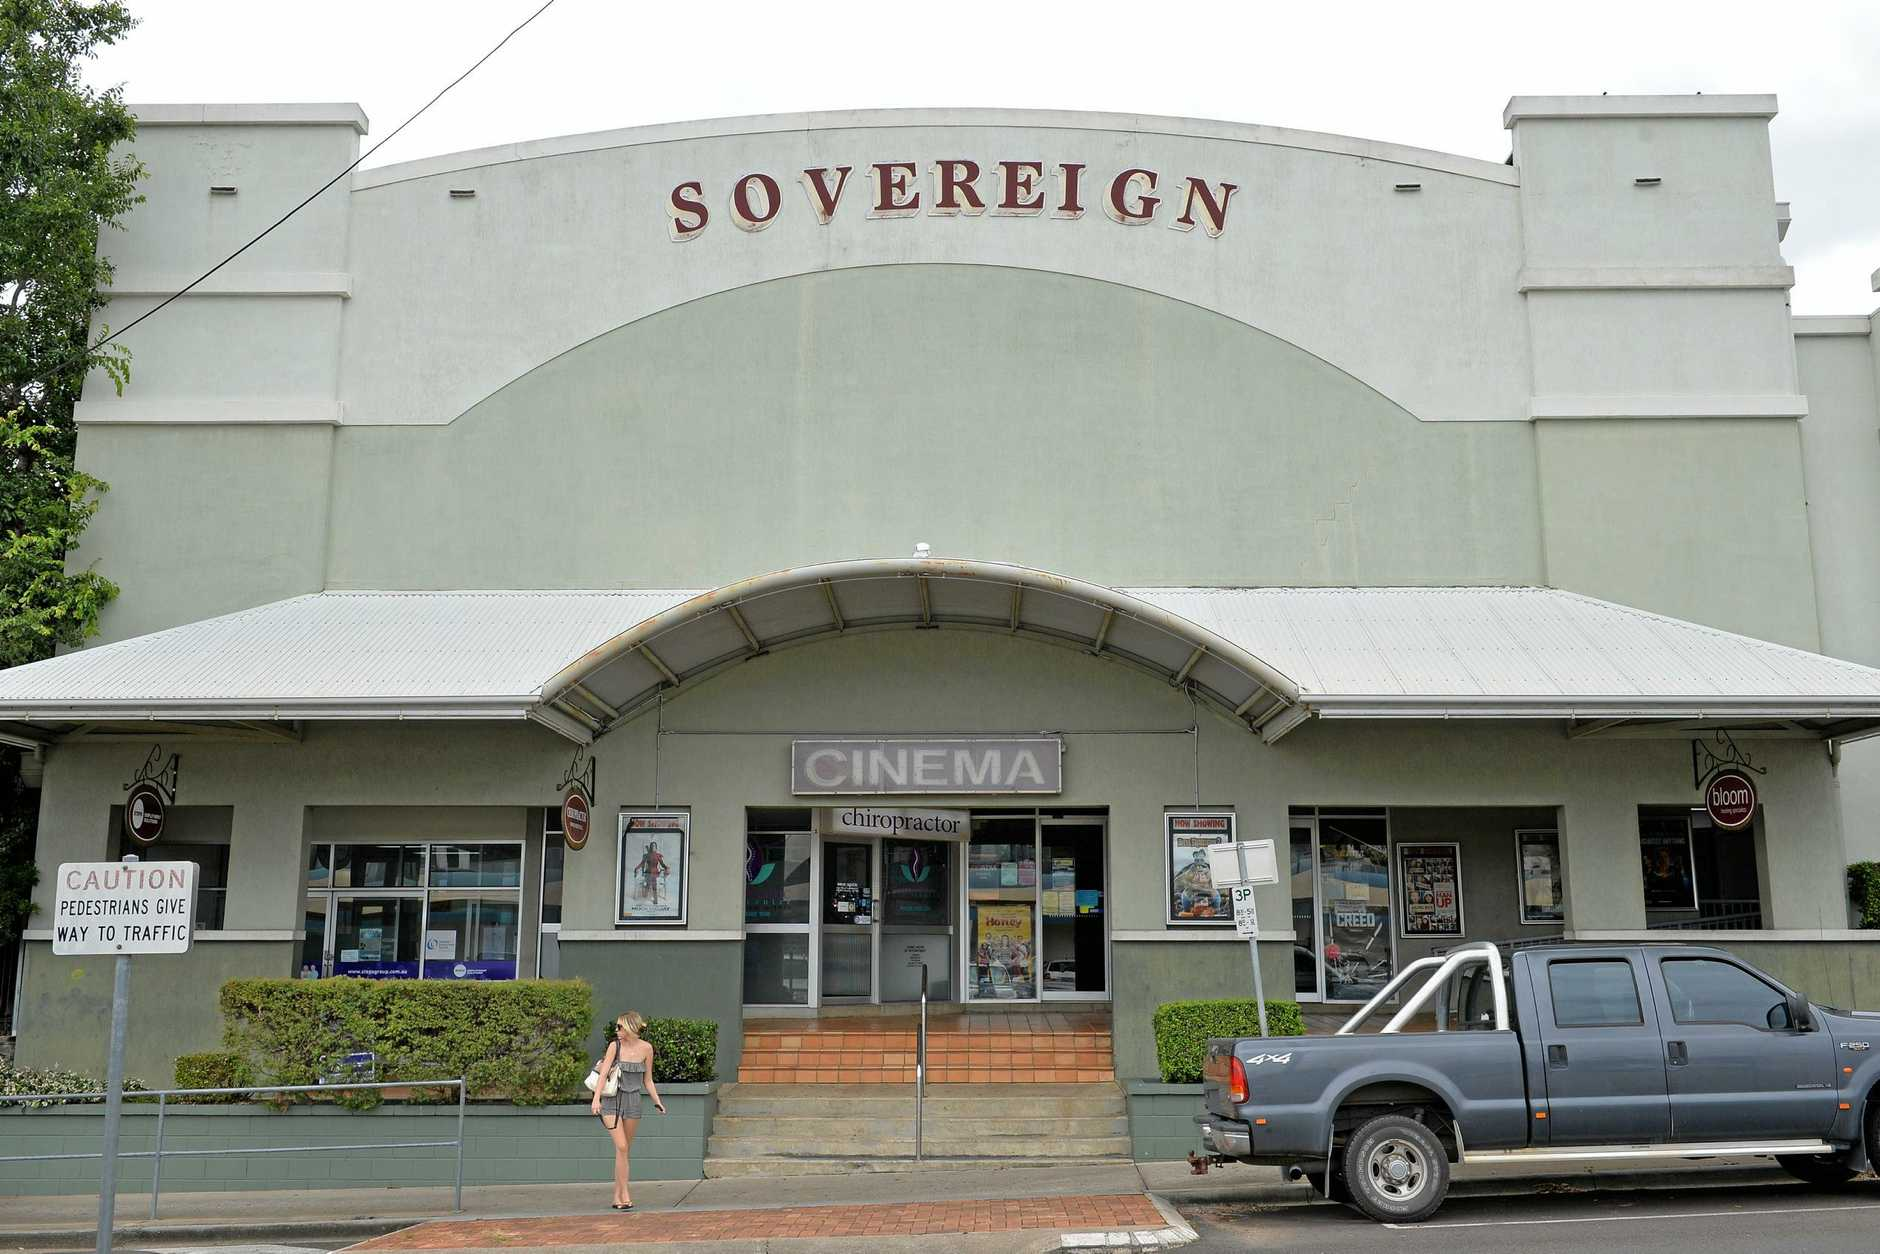 Sovereign cinema building, Monkland Street, Gympie. December 1, 2015.Photo Patrick Woods / Gympie Times